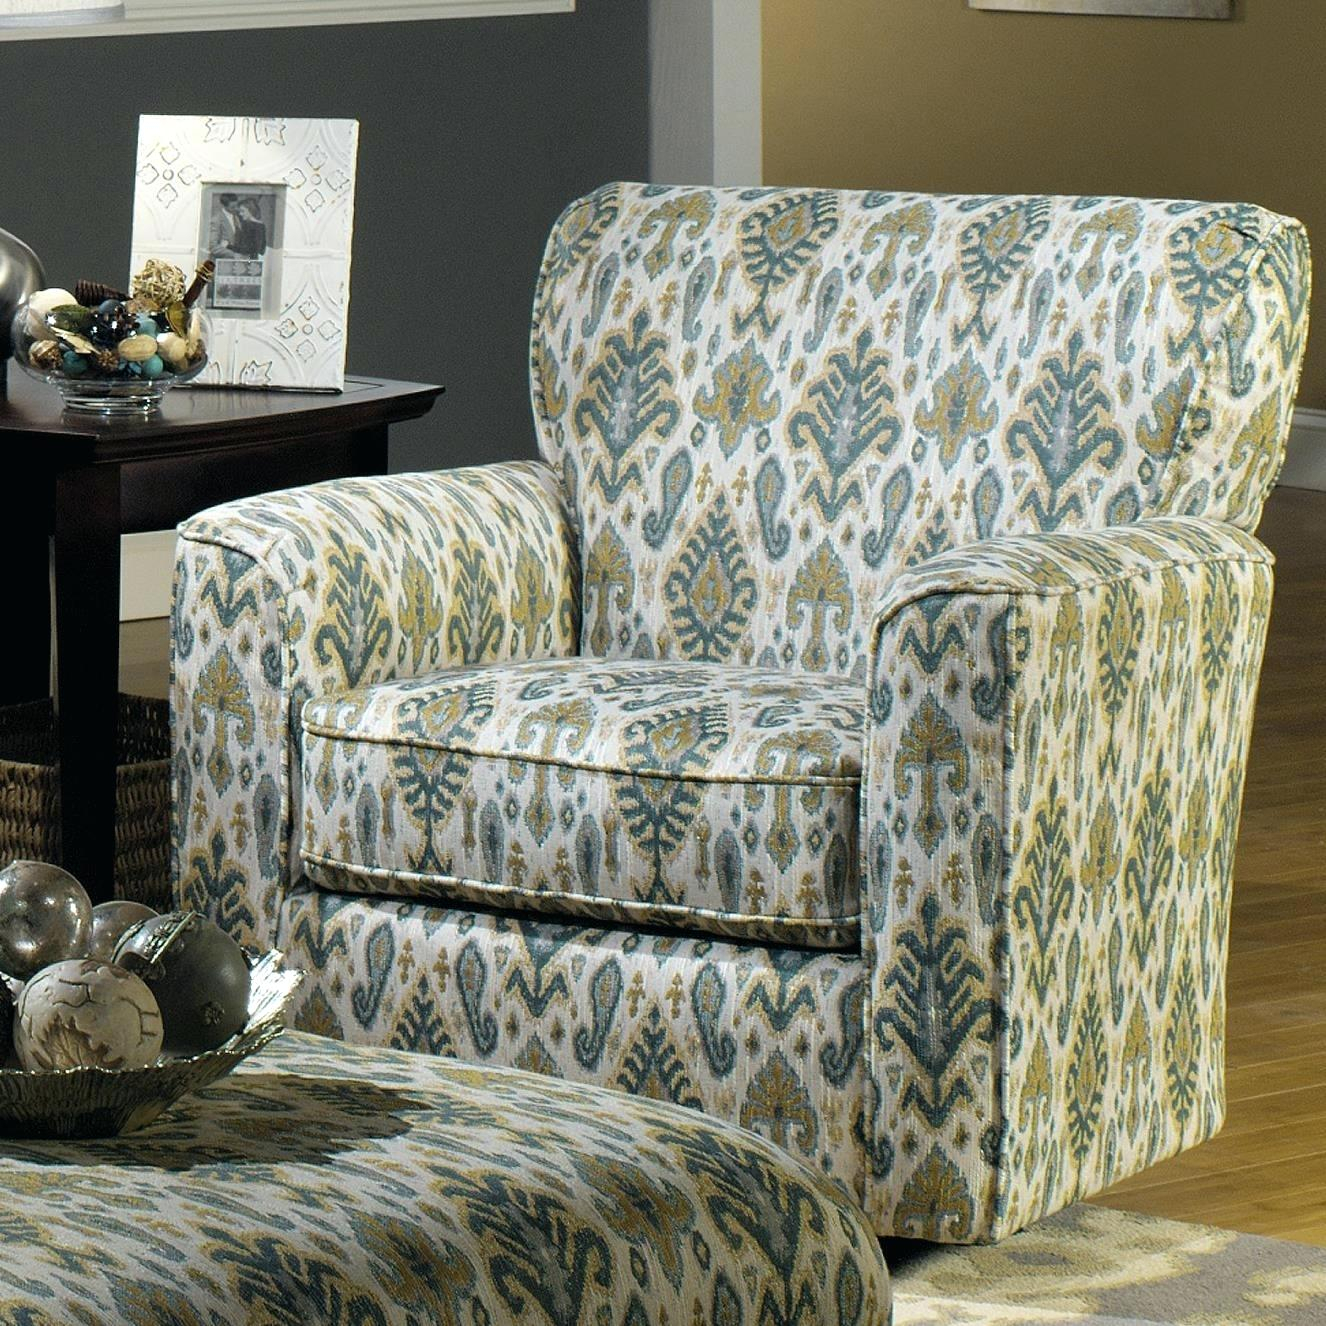 Living Room Accent Chairs With Arms Accent Chairs Upholstered Swivel Intended For Umber Grey Swivel Accent Chairs (Image 15 of 20)